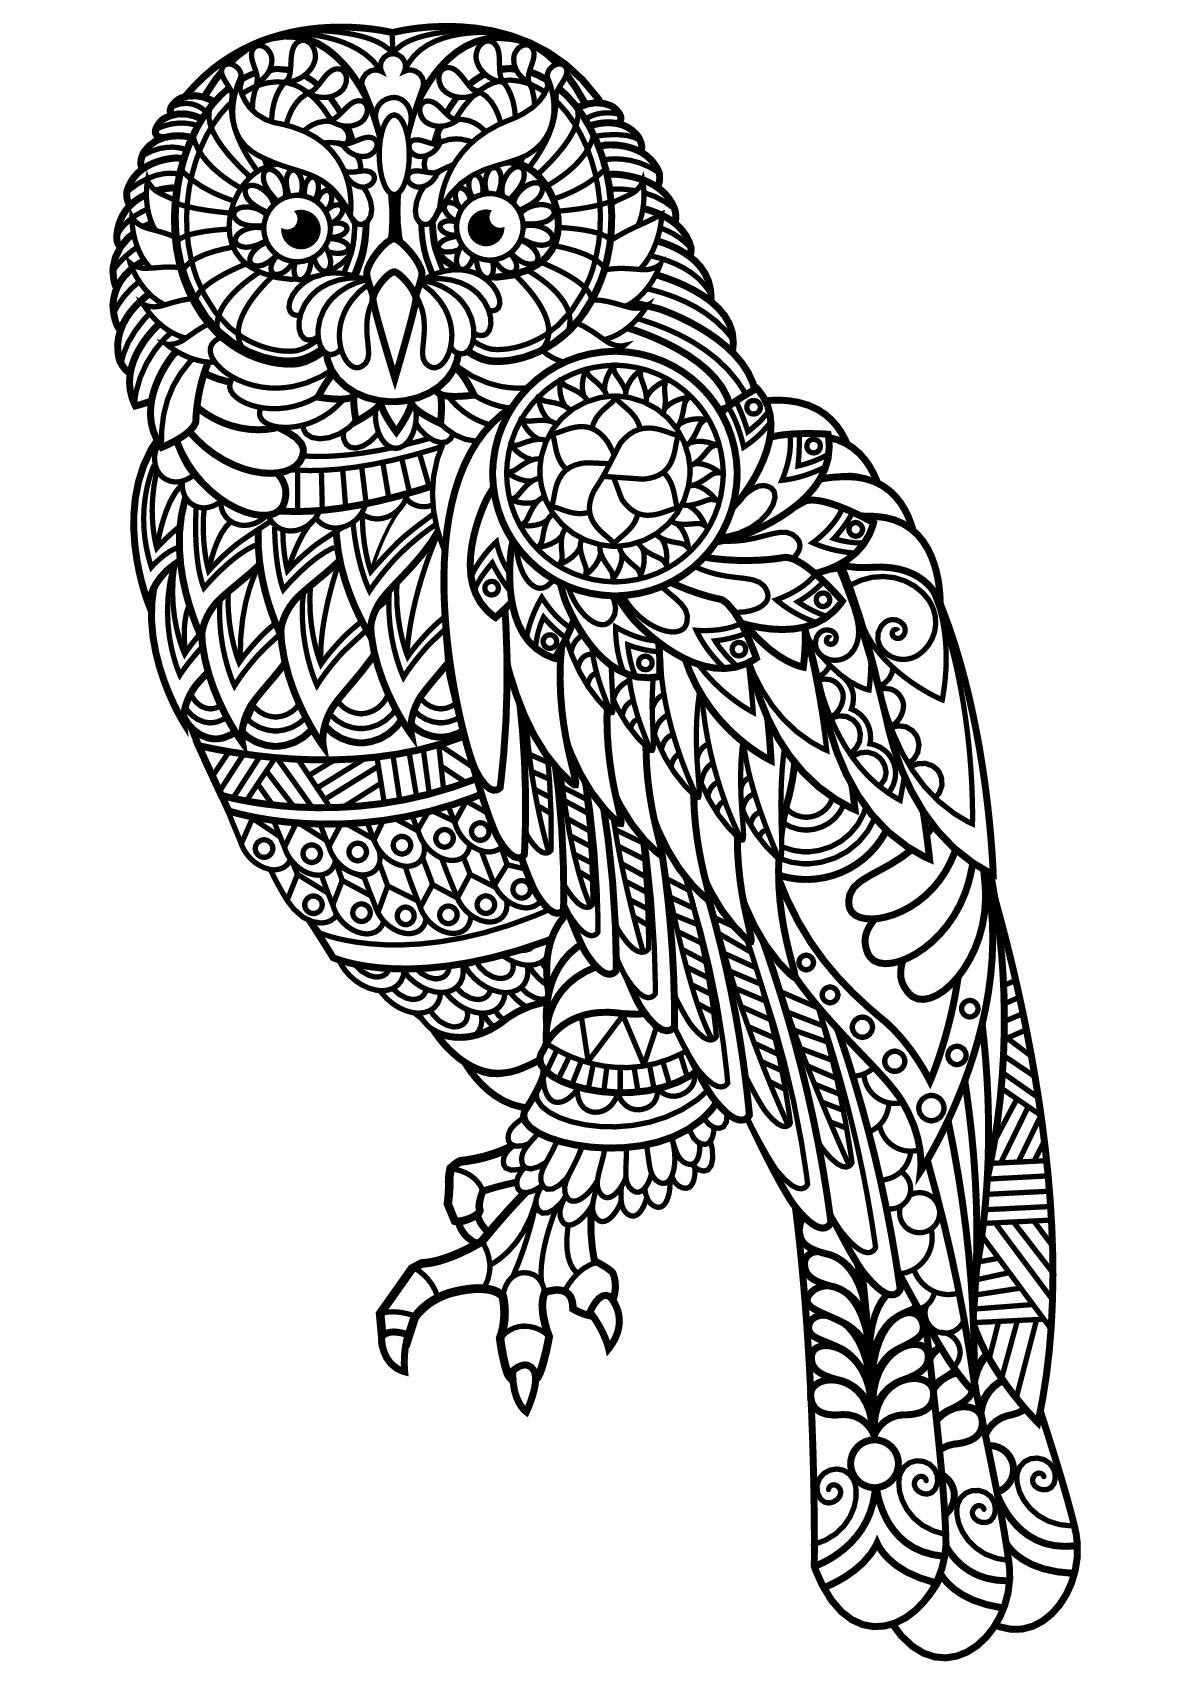 coloring pages for adults owls owl coloring pages for adults free detailed owl coloring for adults coloring owls pages